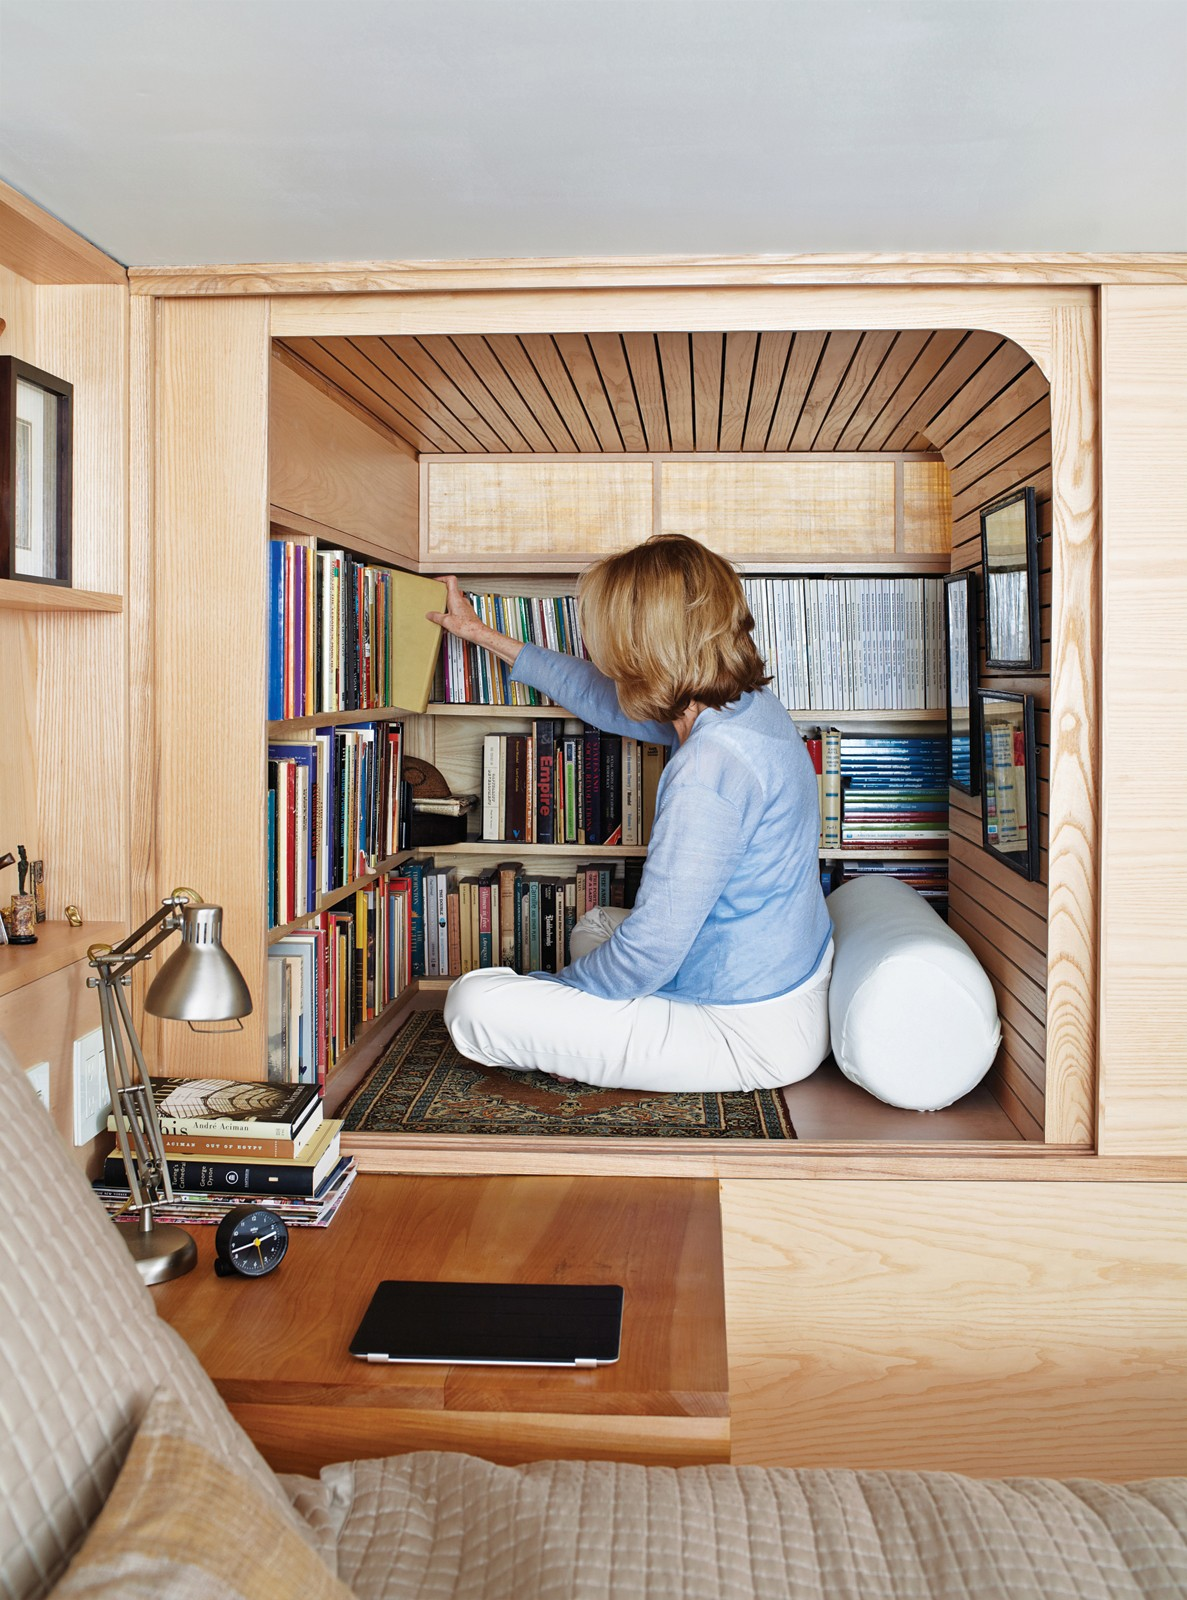 Articles about space saving wood paneled apartment manhattan on Dwell.com - Dwell